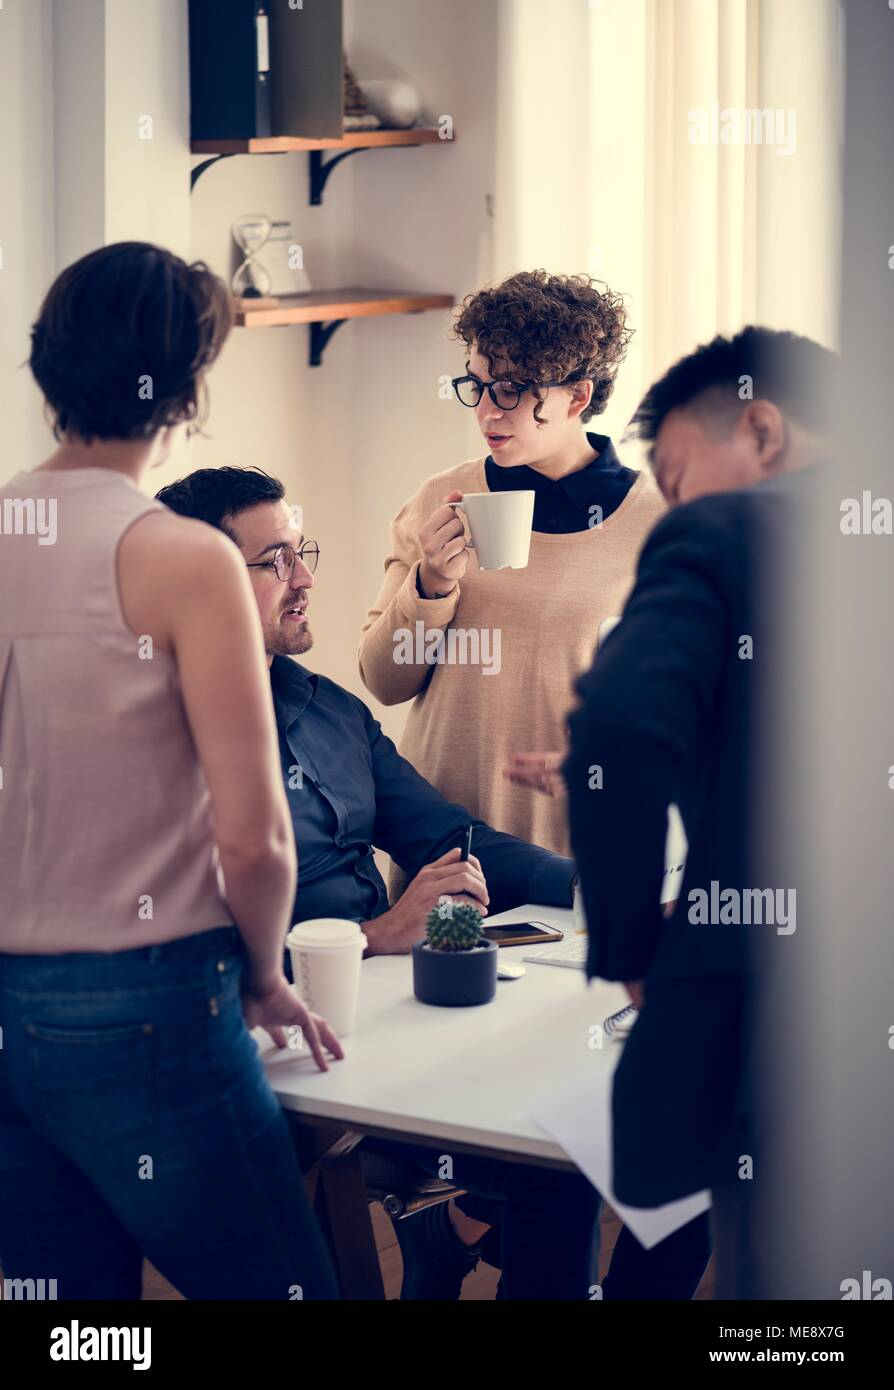 Co-workers working together - Stock Image